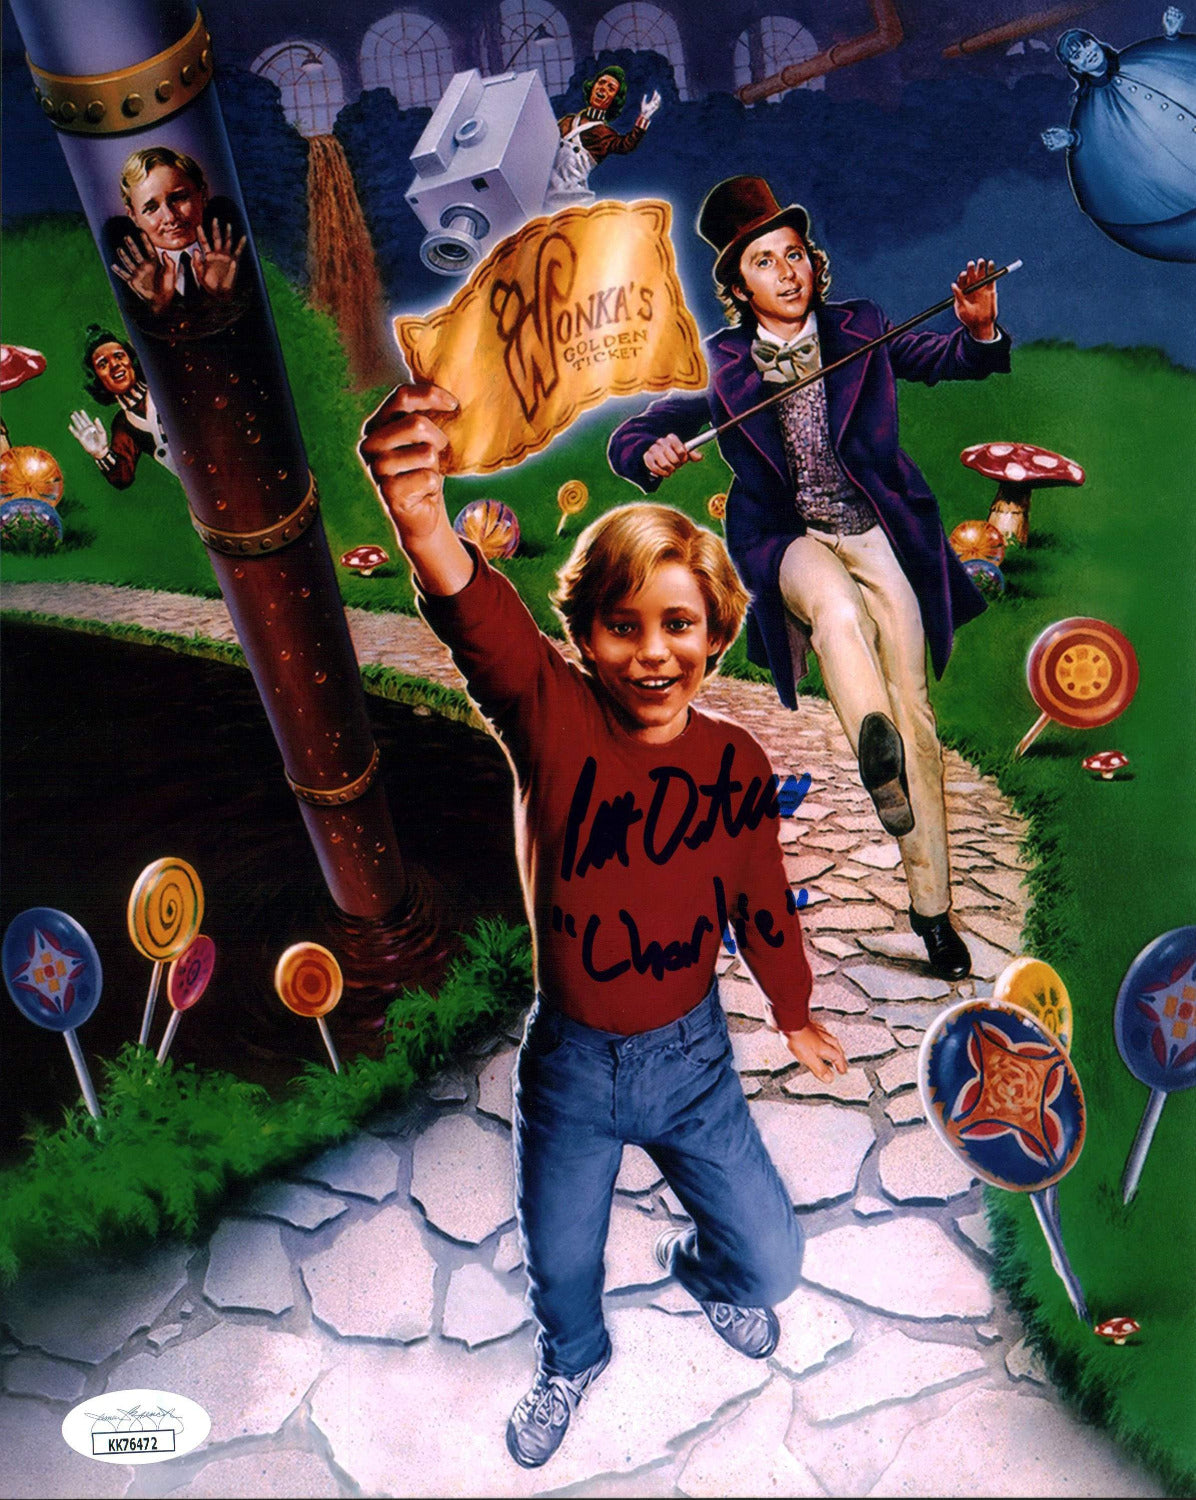 Peter Ostrum Willy Wonka 8x10 Photo Signed Autograph JSA Certified COA Auto GalaxyCon